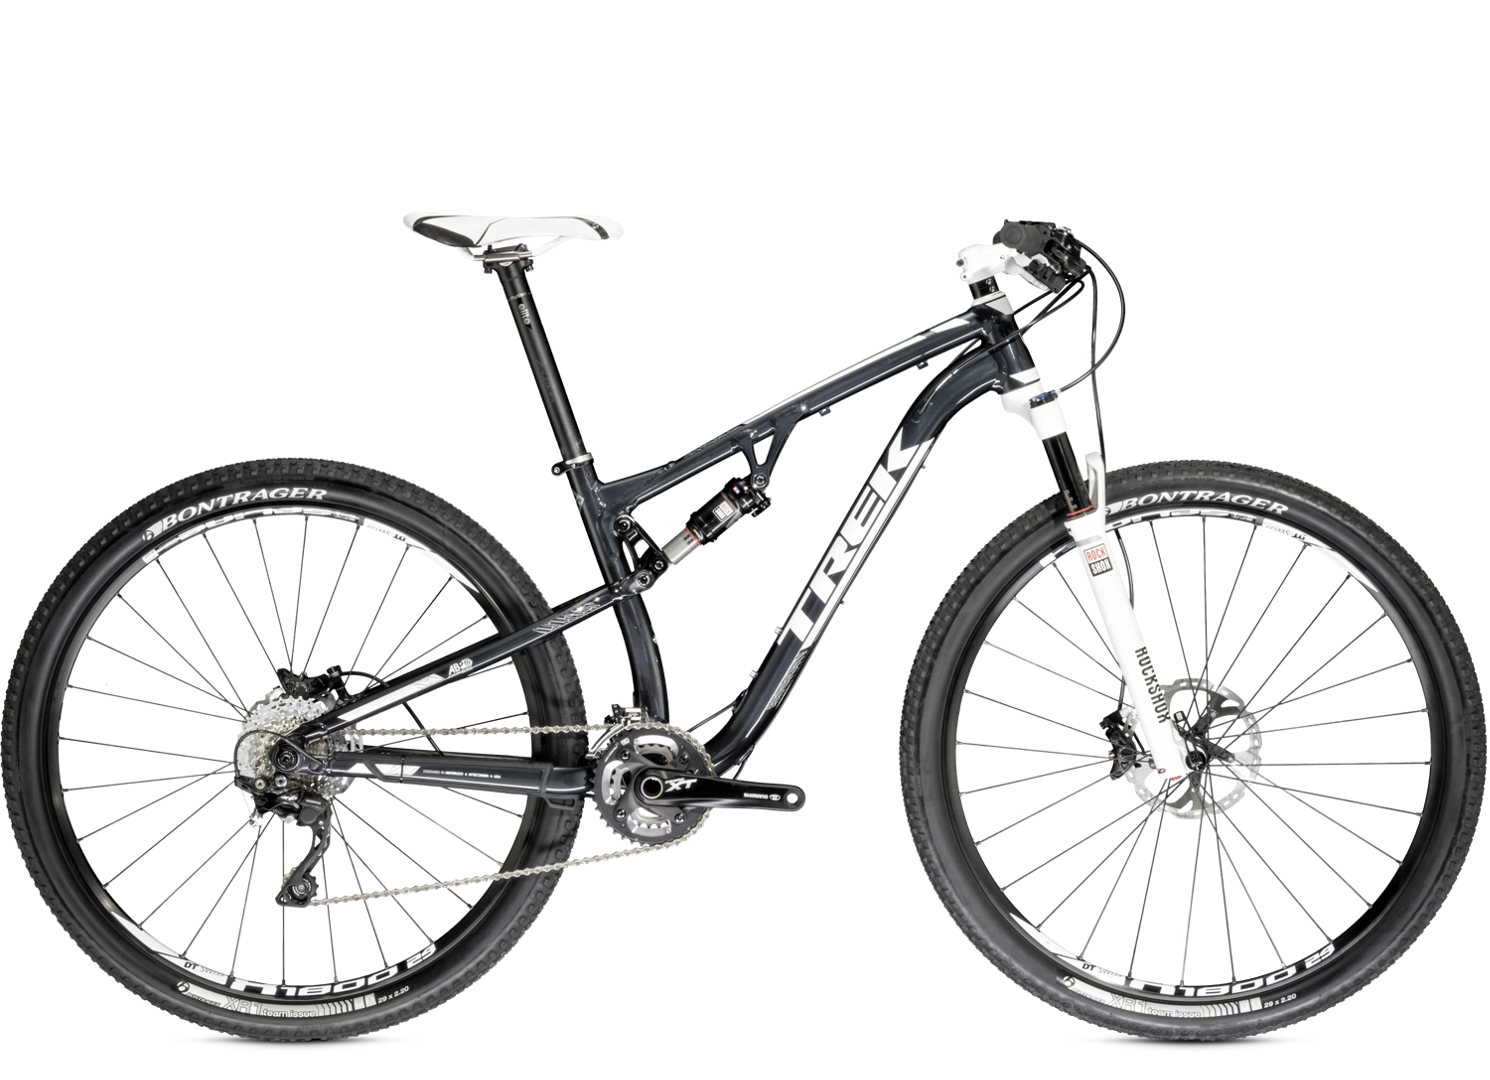 2ad6e811dc6 2014 Superfly FS 9 - Bike Archive - Trek Bicycle